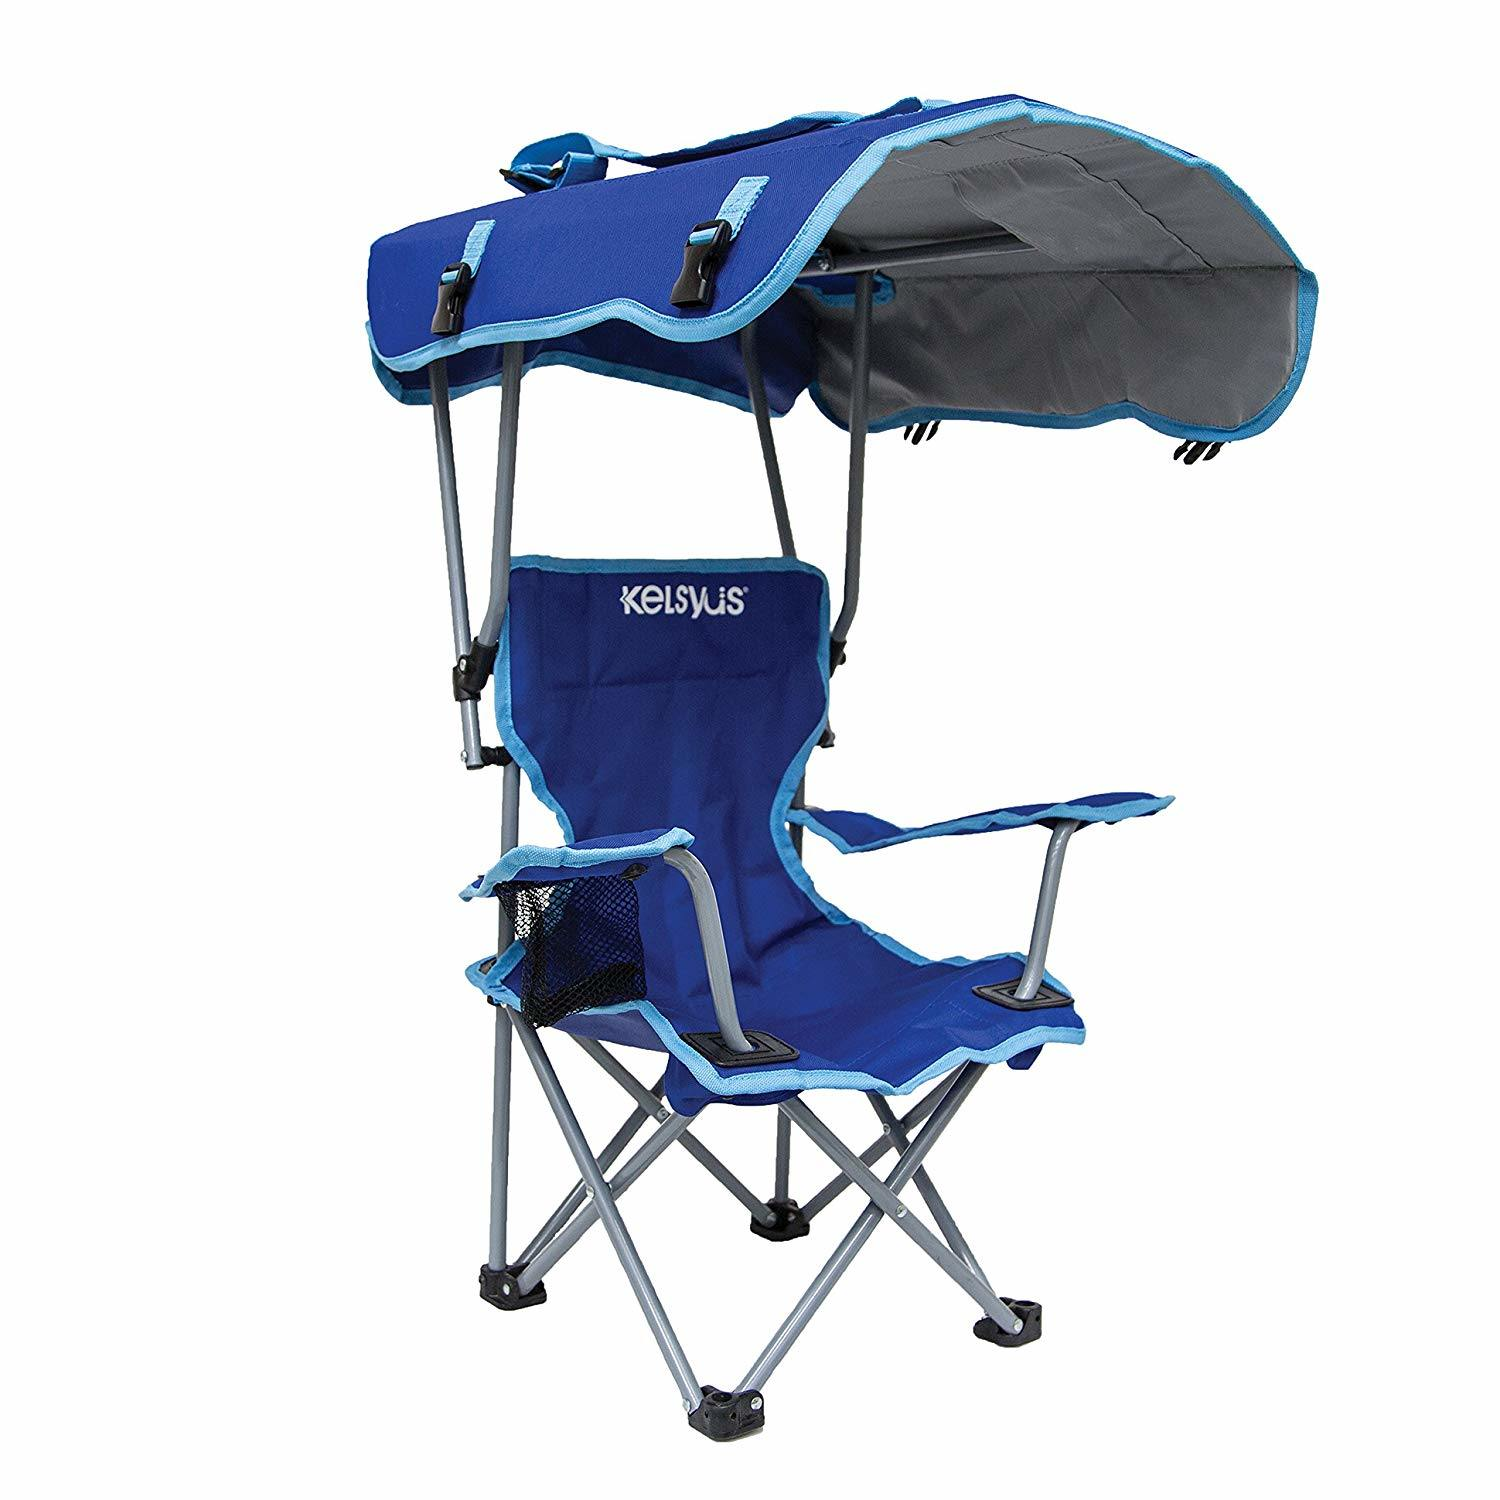 Brilliant Hot Item Kids Outdoor Canopy Chair With Umbrella For Camping Tailgates And Outdoor Events Evergreenethics Interior Chair Design Evergreenethicsorg